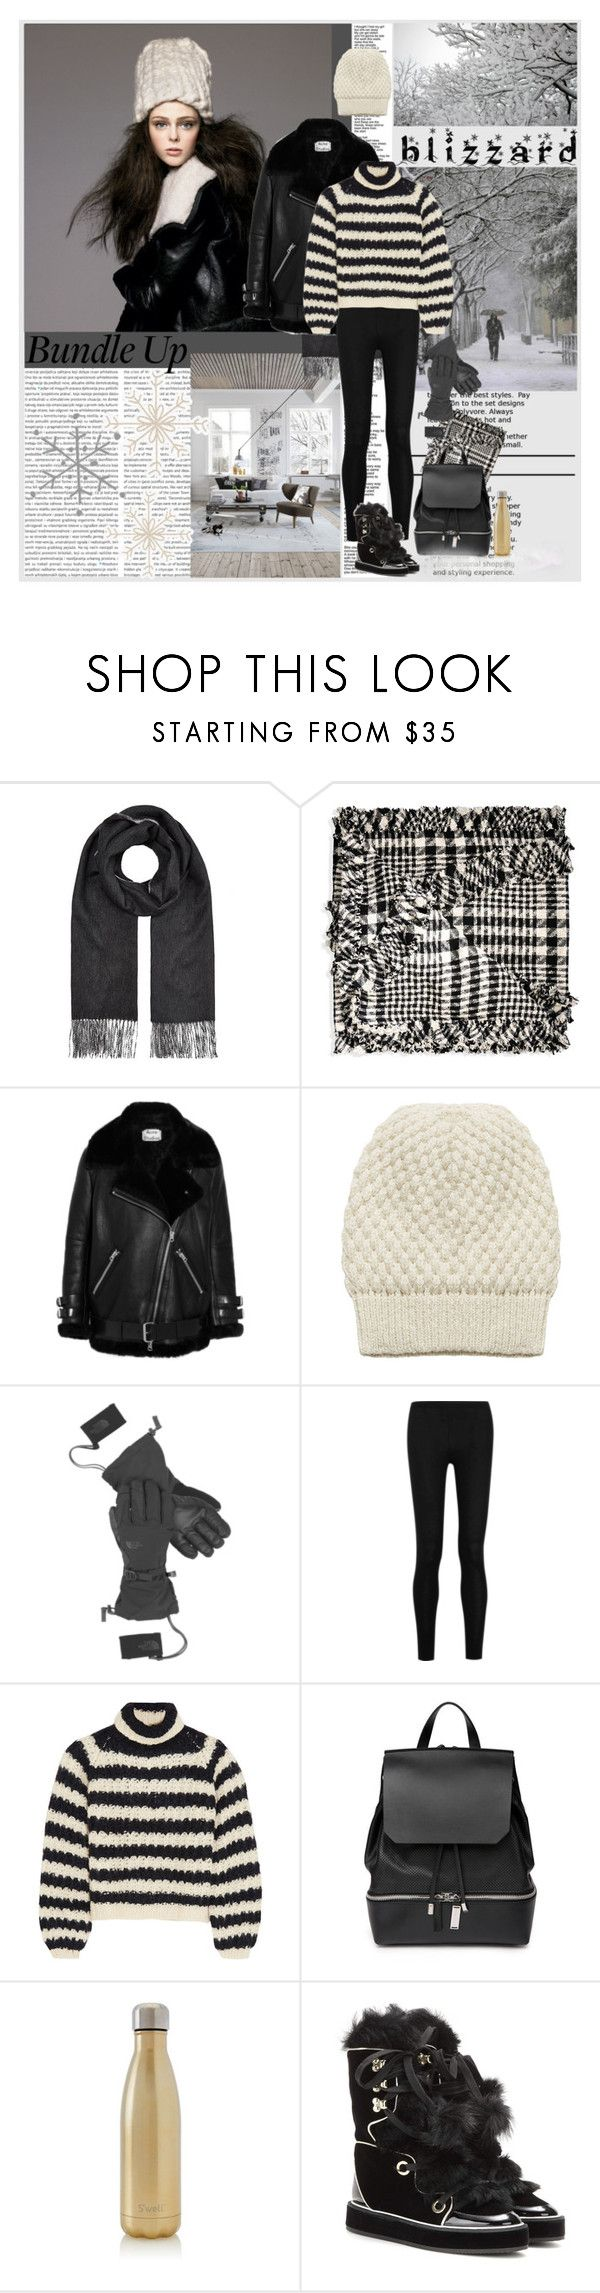 """Blizzard- Polyvore Contest"" by shift ❤ liked on Polyvore featuring rag & bone, Simone Rocha, Acne Studios, Alice + Olivia, The North Face, Donna Karan, Chloé, COSTUME NATIONAL, S'well and Nicholas Kirkwood"